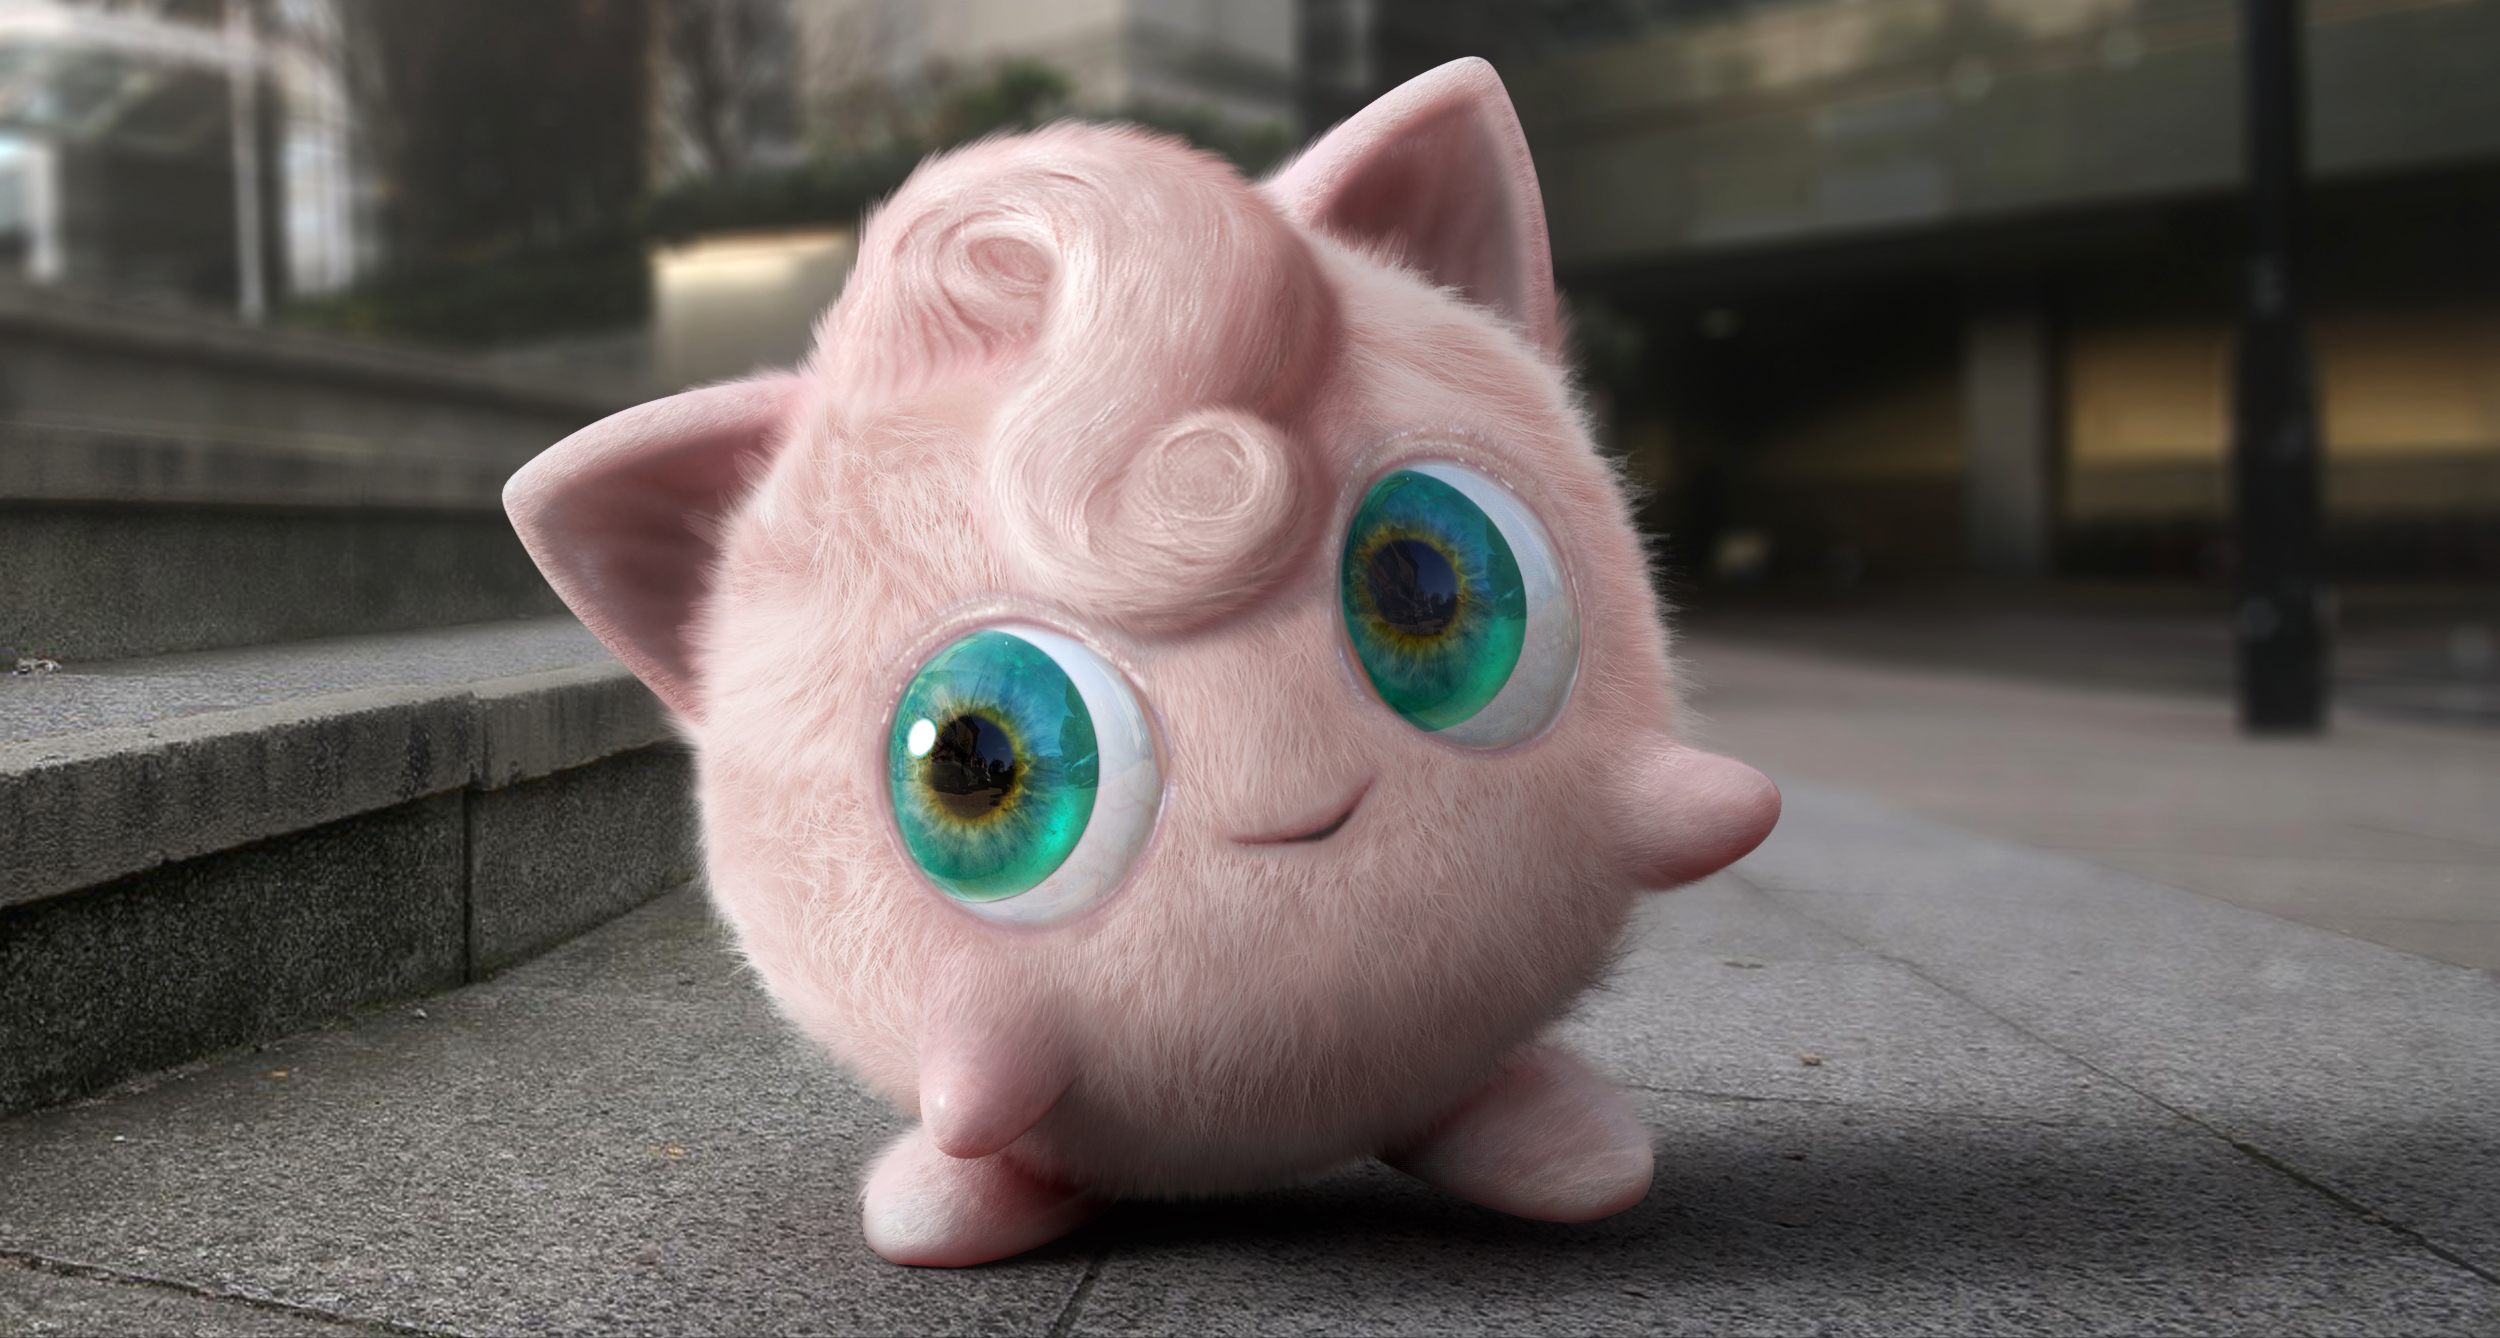 Concept art of Jigglypuff